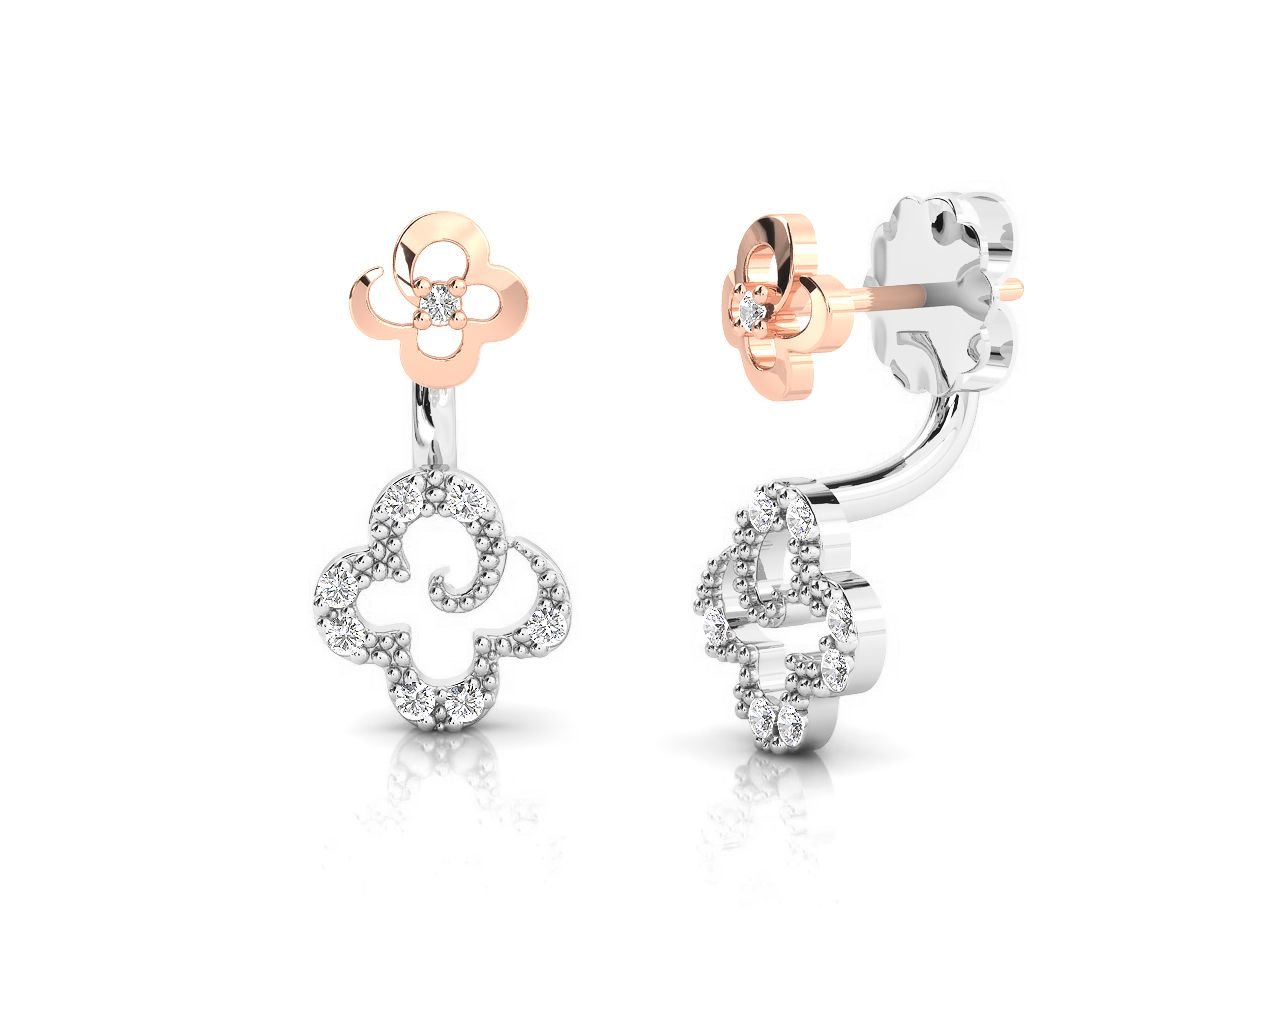 3f81043ea Products Archive | Kukka Jewelry Pink And Gold, Black Gold, Stud Earrings,  Flower